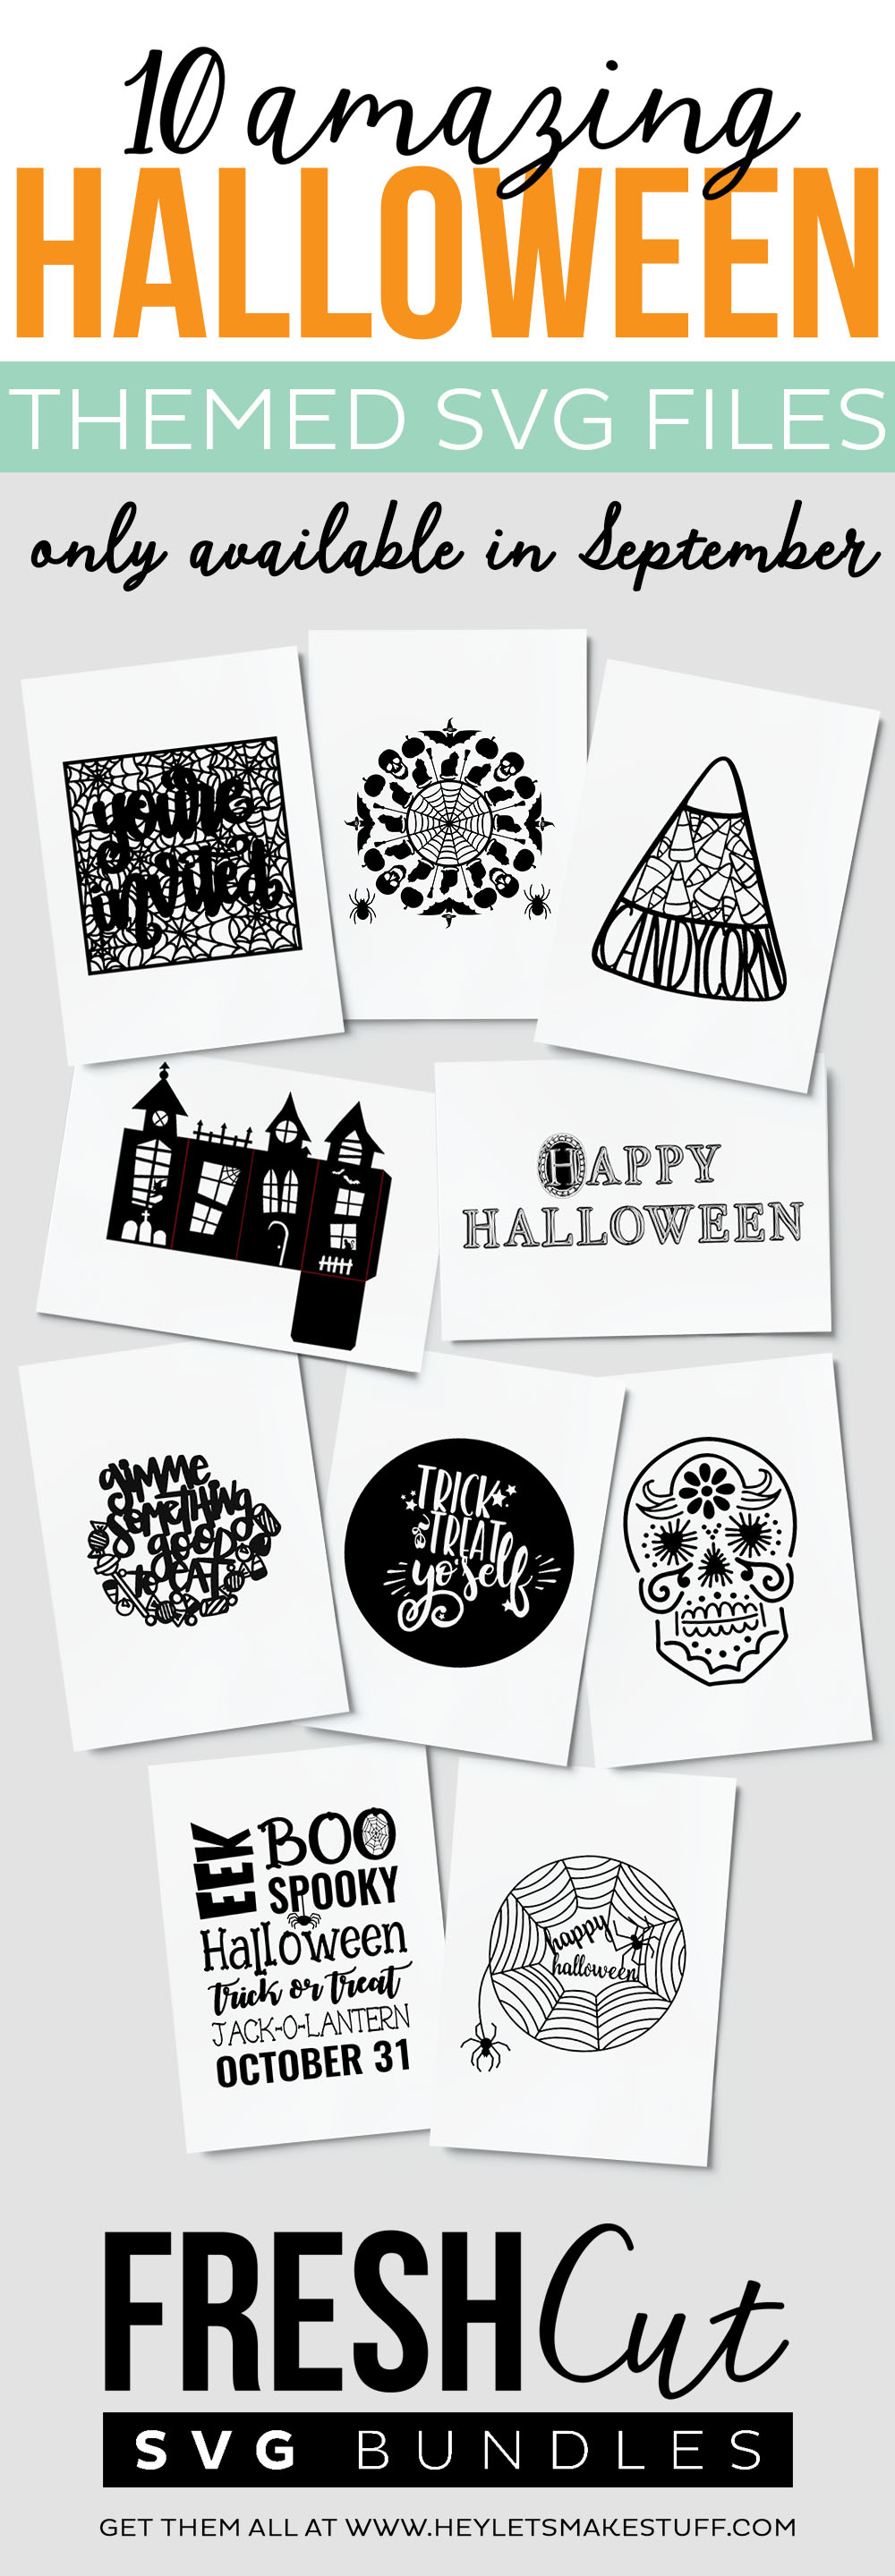 Halloween Fresh Cuts SVG Bundle- available only for September!